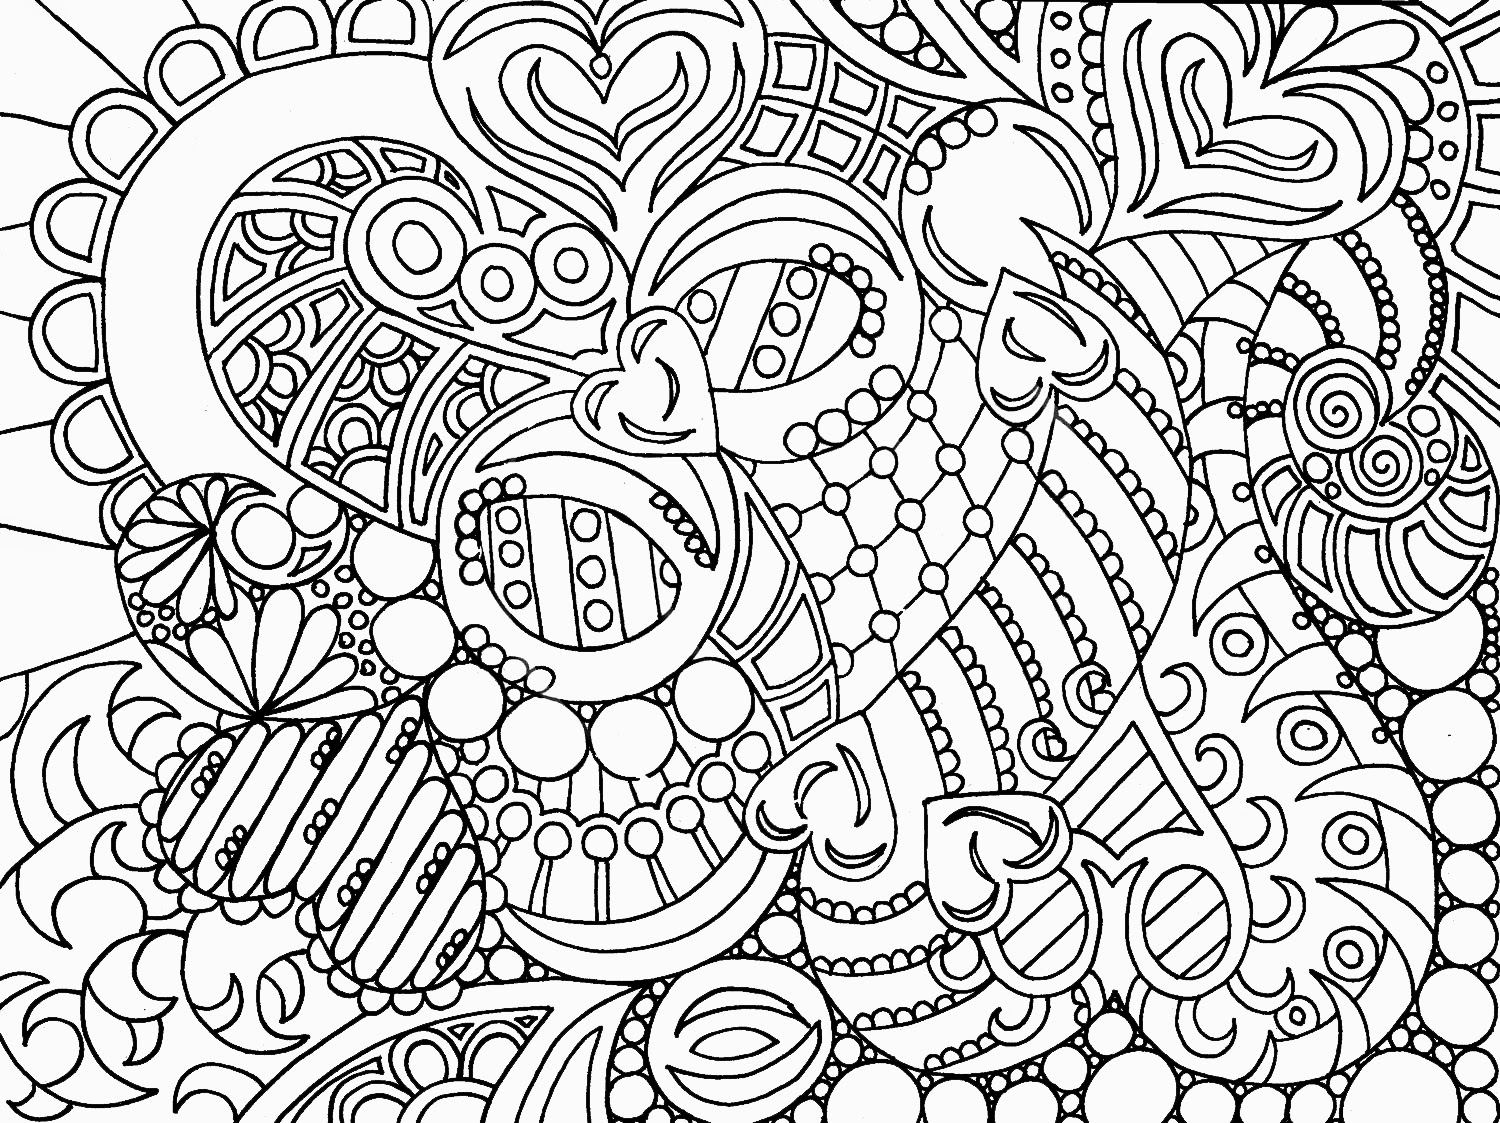 abstract coloring pages - abstract art hd coloring pages for adult